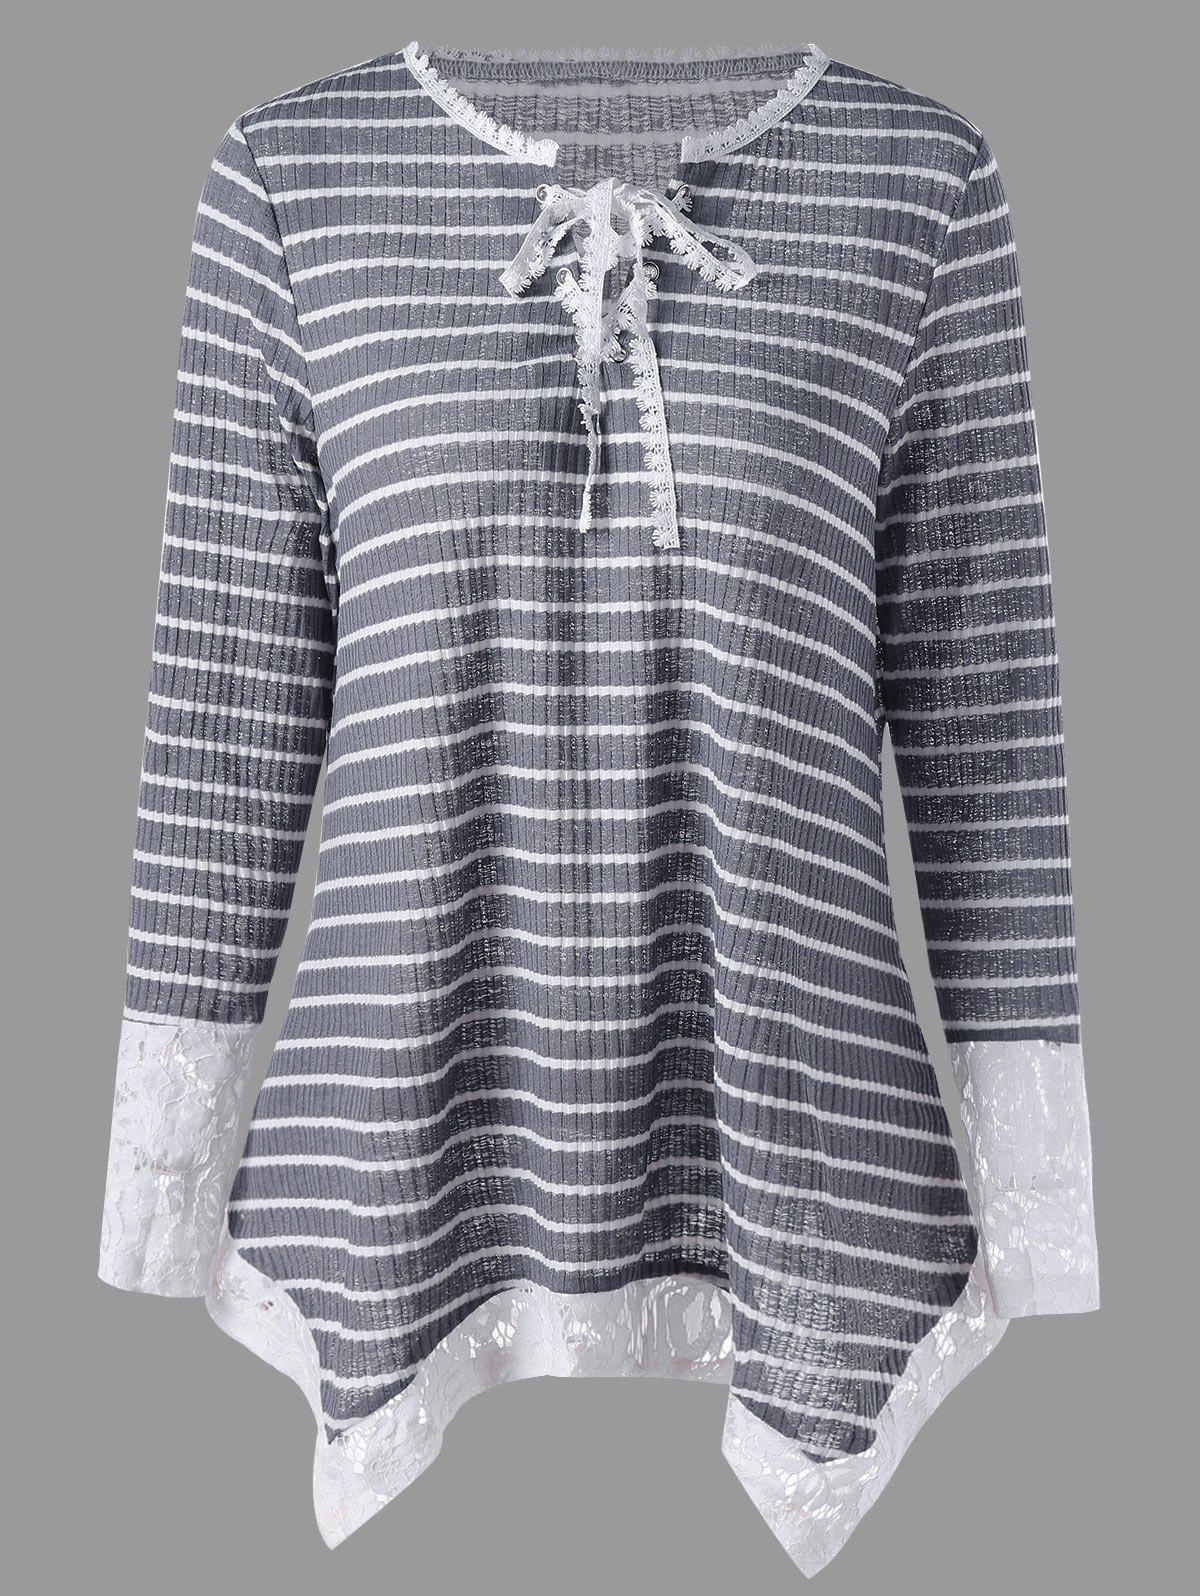 Plus Size Striped Lace Up Asymmetric KnitwearWOMEN<br><br>Size: 4XL; Color: GREY AND WHITE; Type: Pullovers; Material: Rayon,Spandex; Sleeve Length: Full; Collar: Crew Neck; Style: Casual; Season: Fall,Spring; Pattern Type: Striped; Weight: 0.2500kg; Package Contents: 1 x Knitwear;